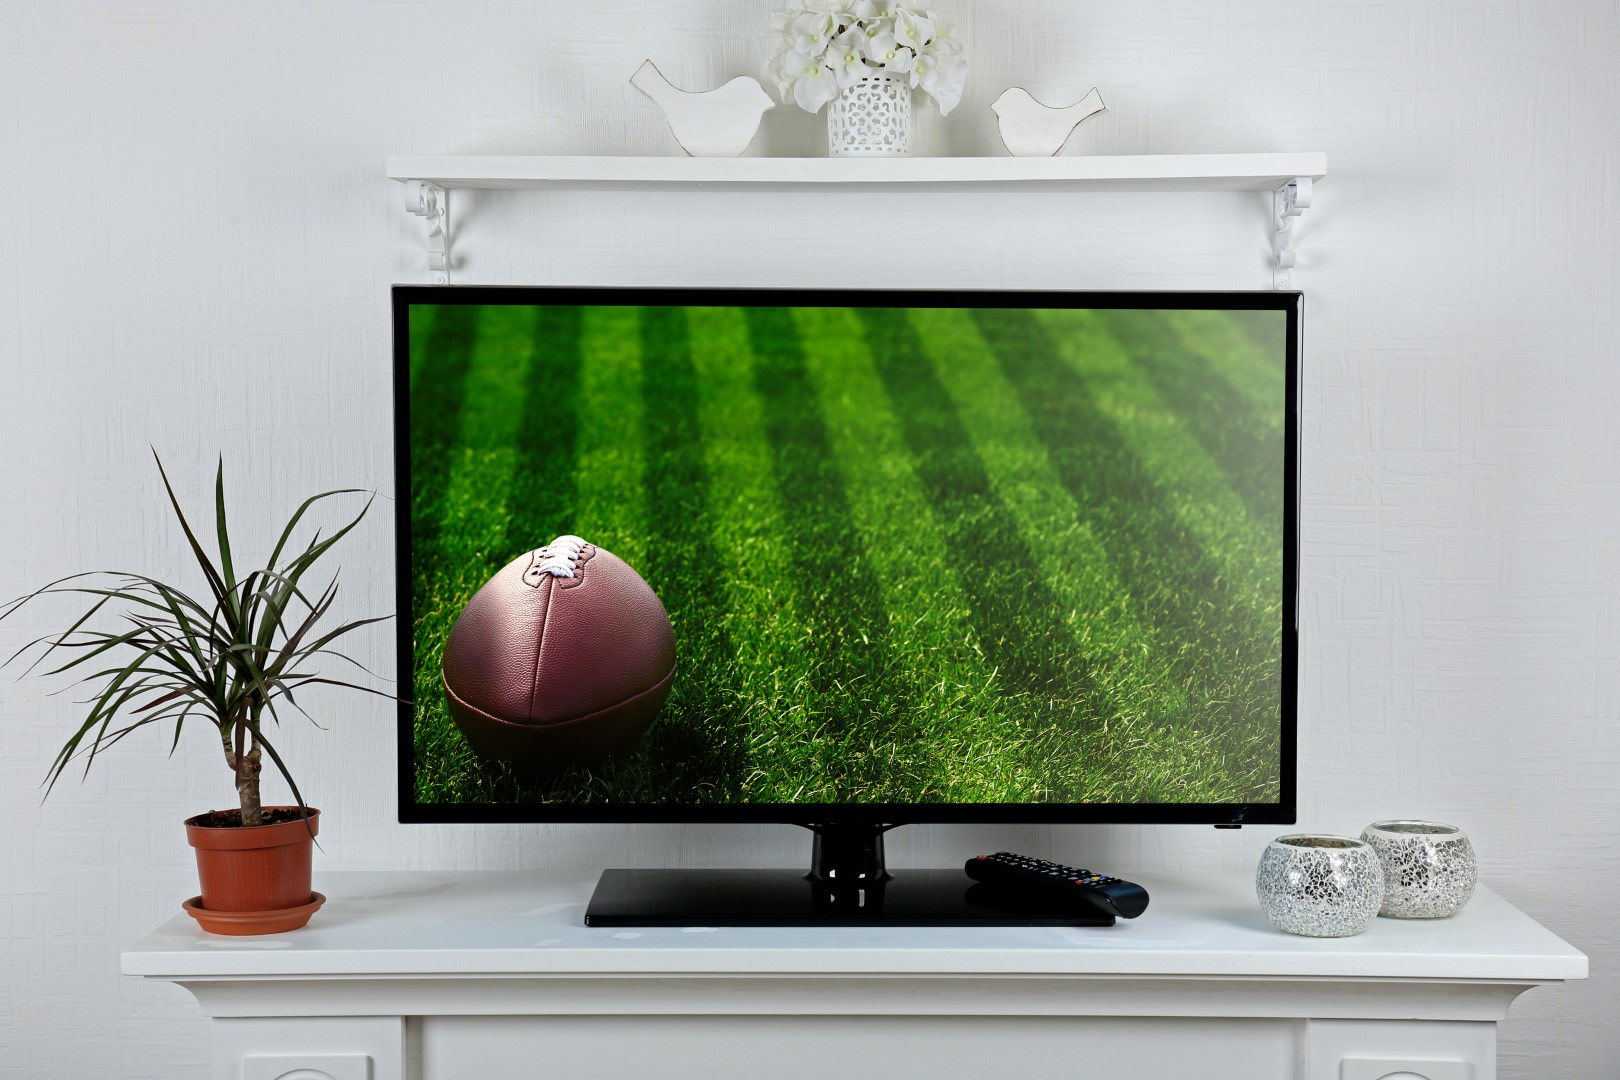 An image related to Best TCL LED TVs